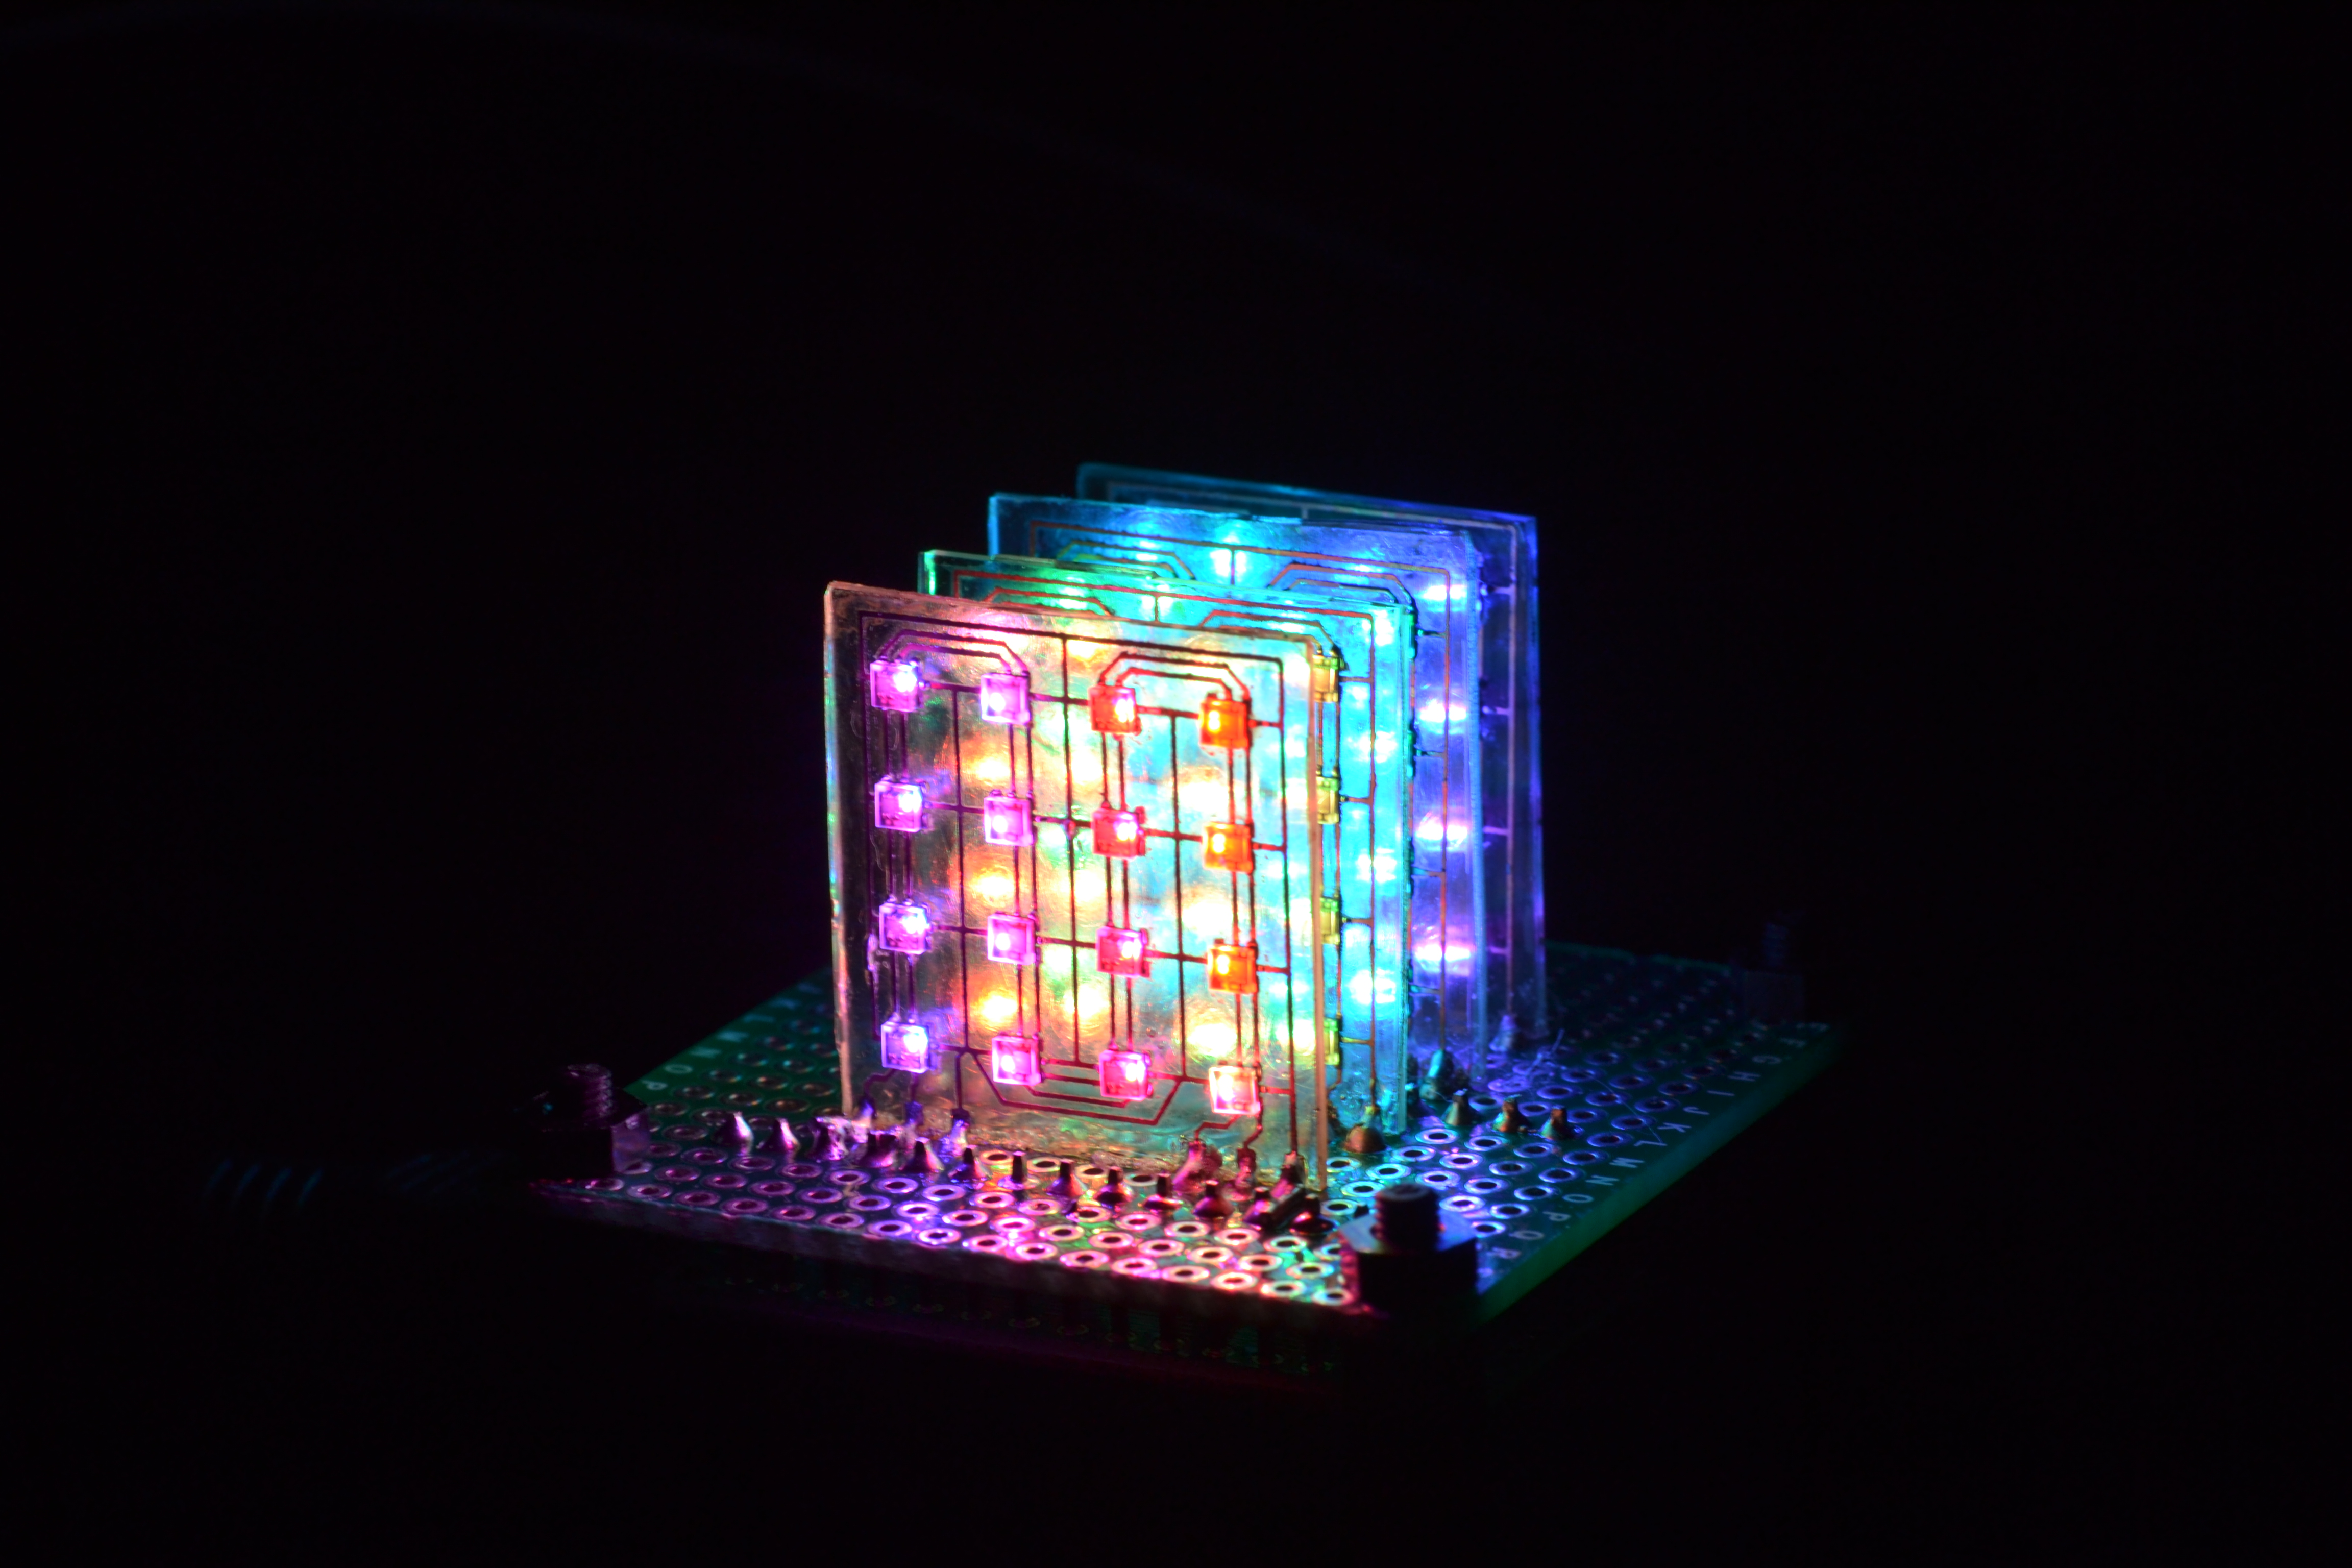 Picture of 4x4x4 DotStar LED Cube on Glass PCBs